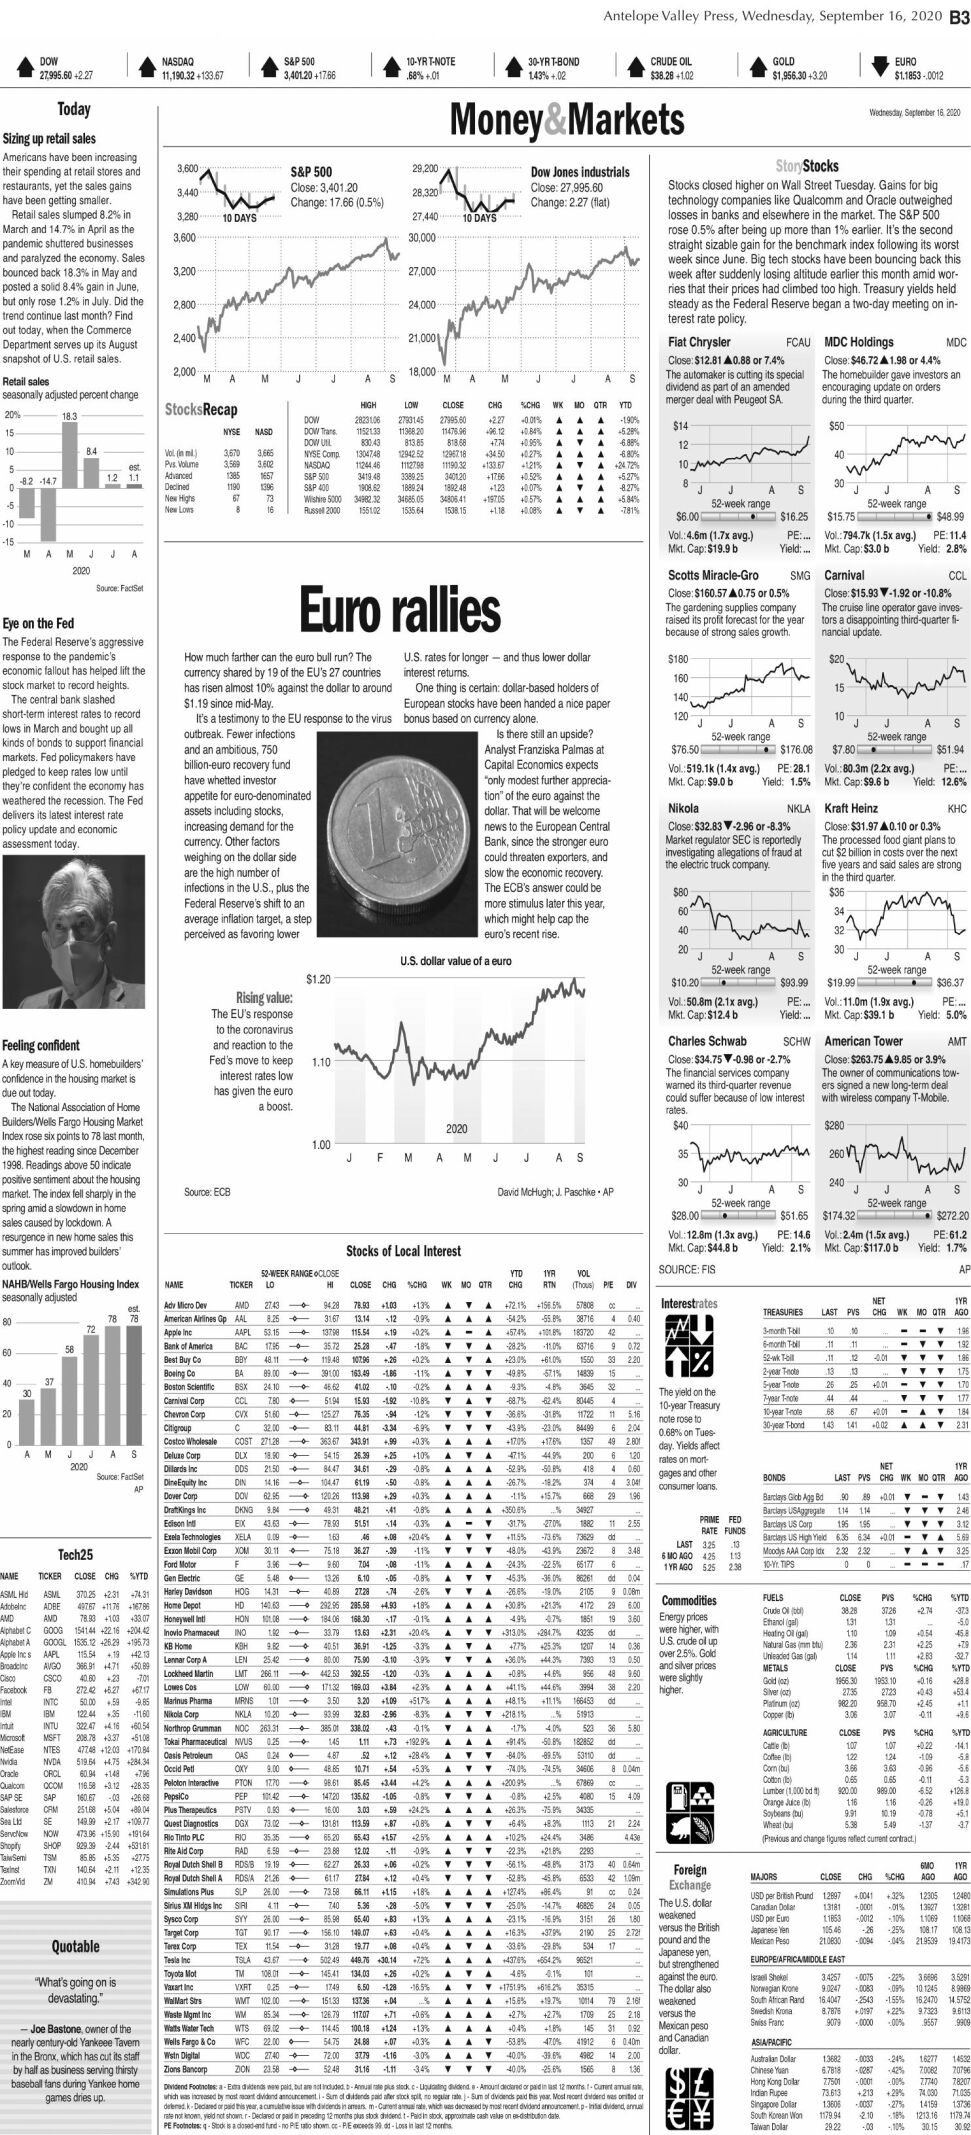 Money & Markets, Sept. 16, 2020